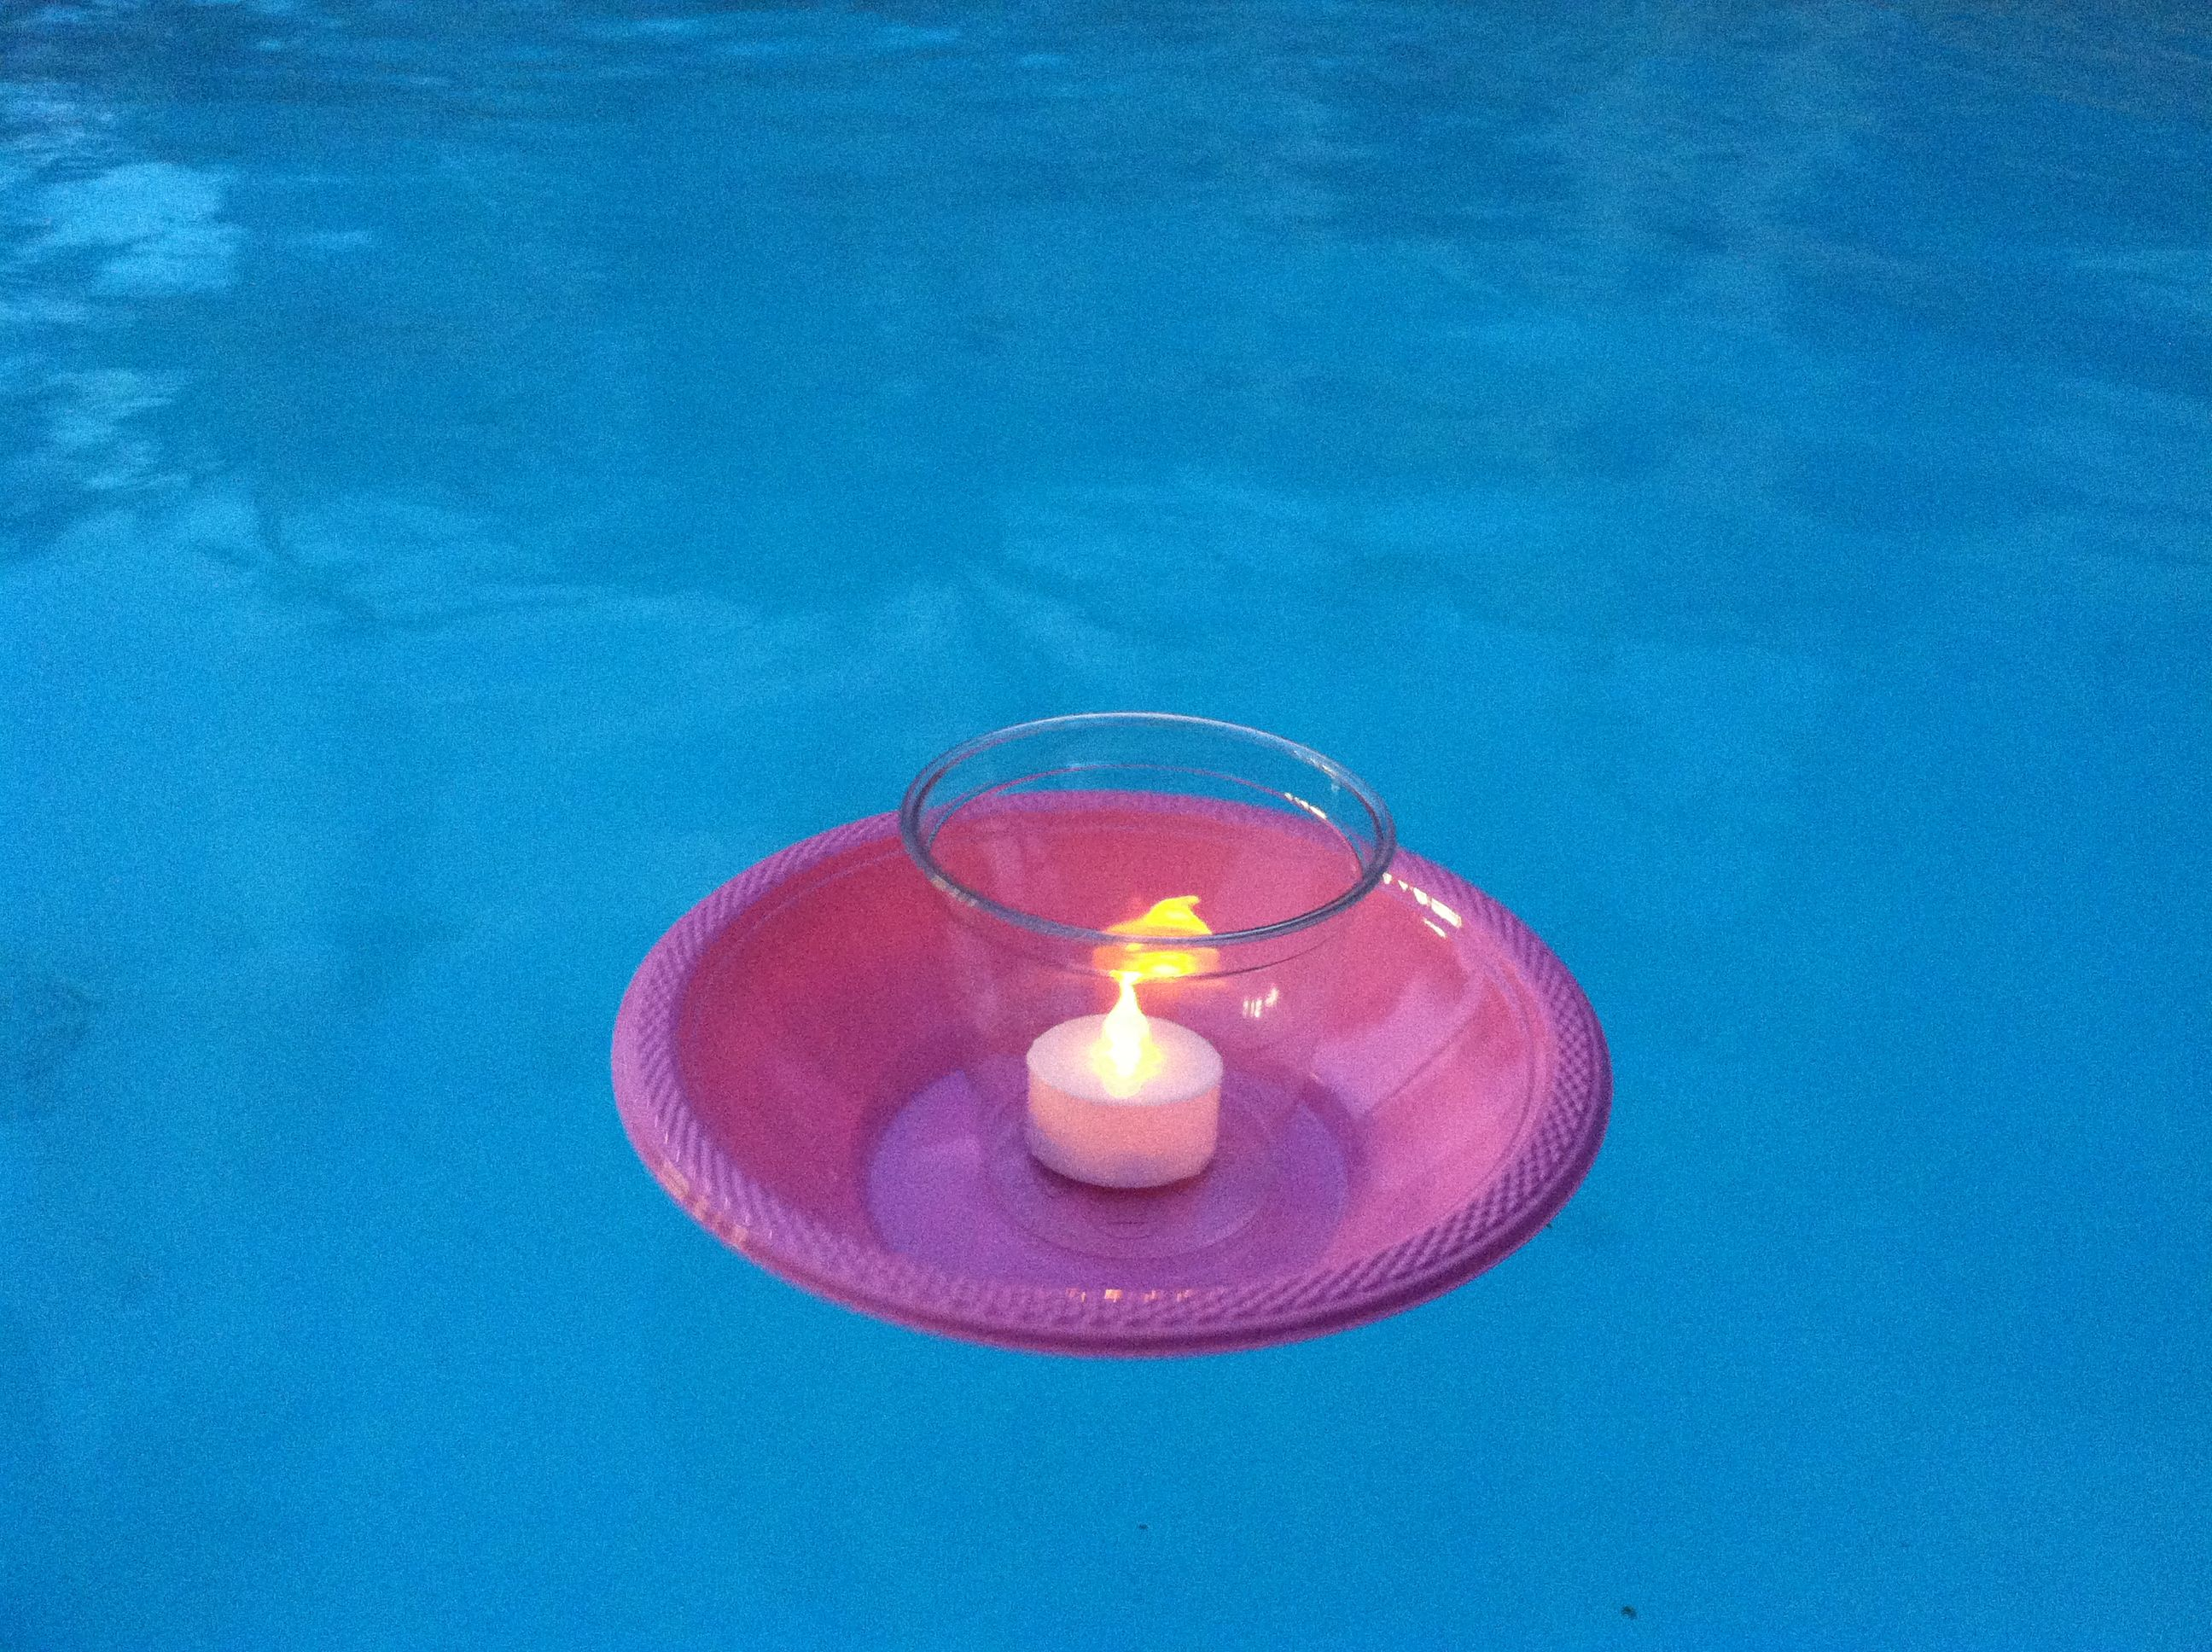 Carina 39 s floating candle idea battery operated candles won 39 t blow out in the wind plastic for Floating candles swimming pool wedding